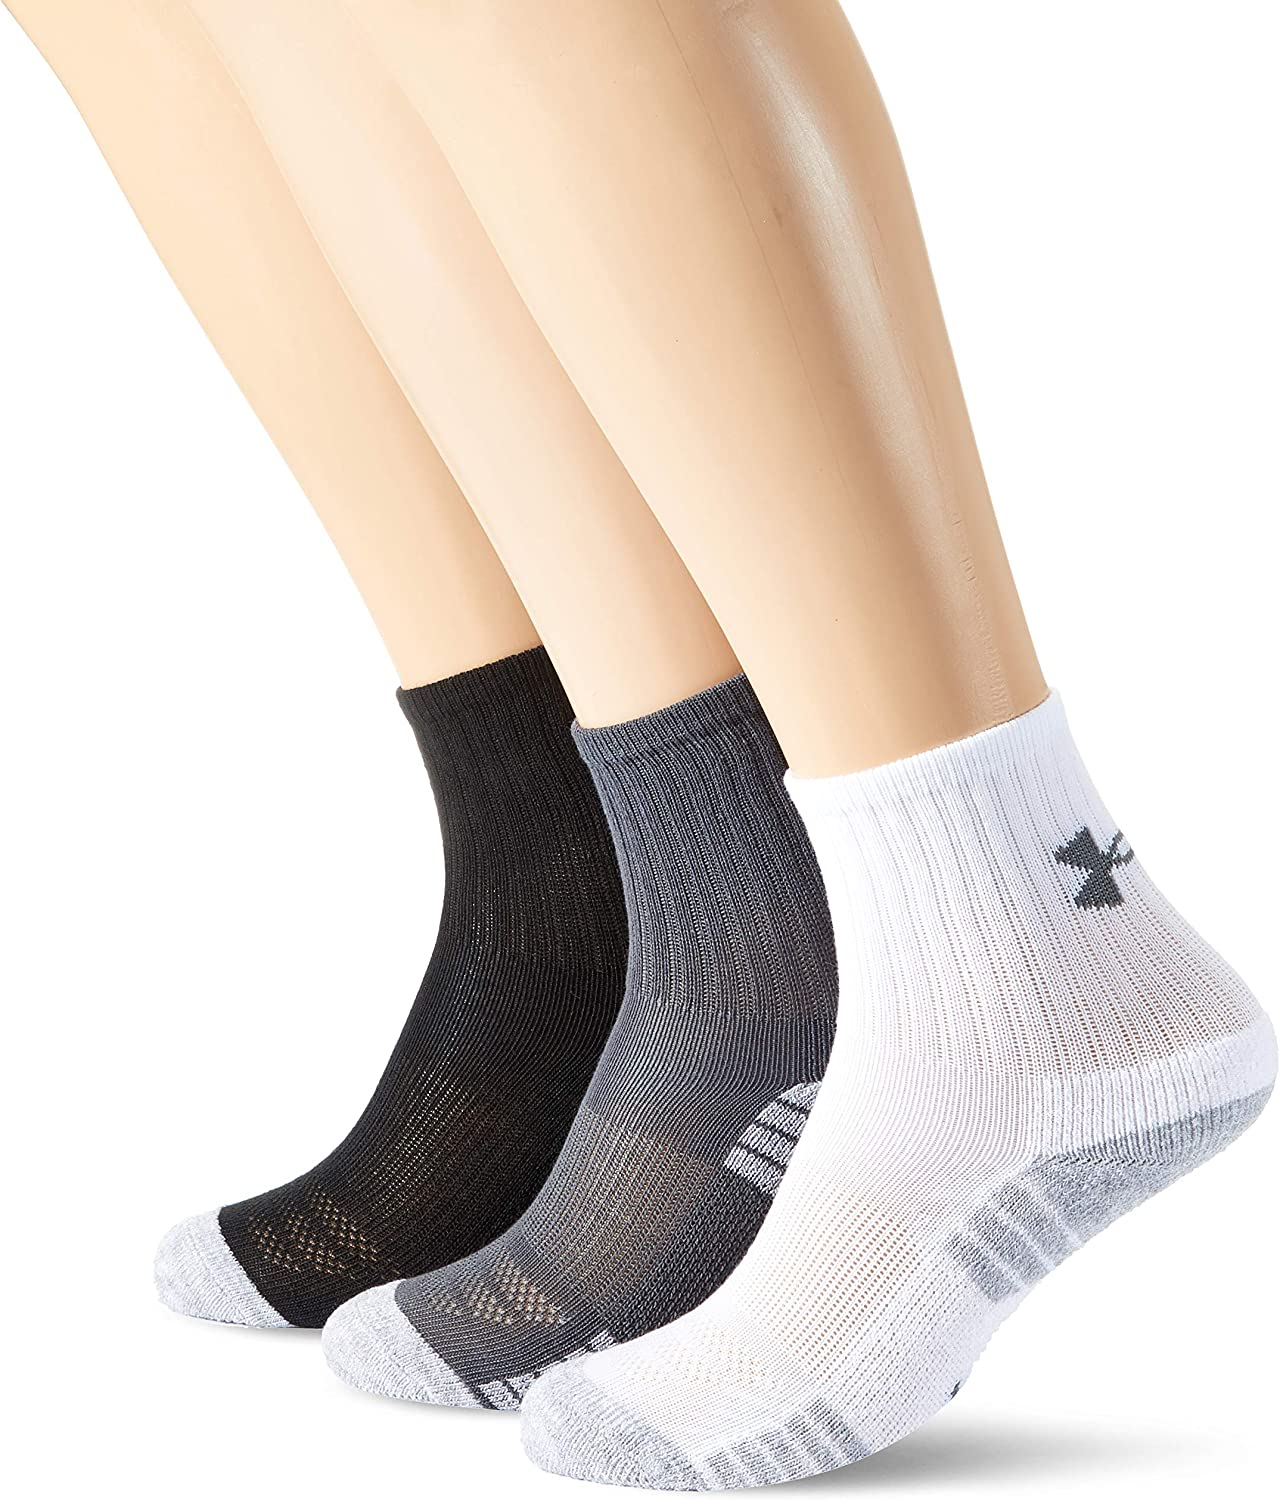 Amazon.com: Under Armour HeatGear Training Crew Socks 3 Pk ...